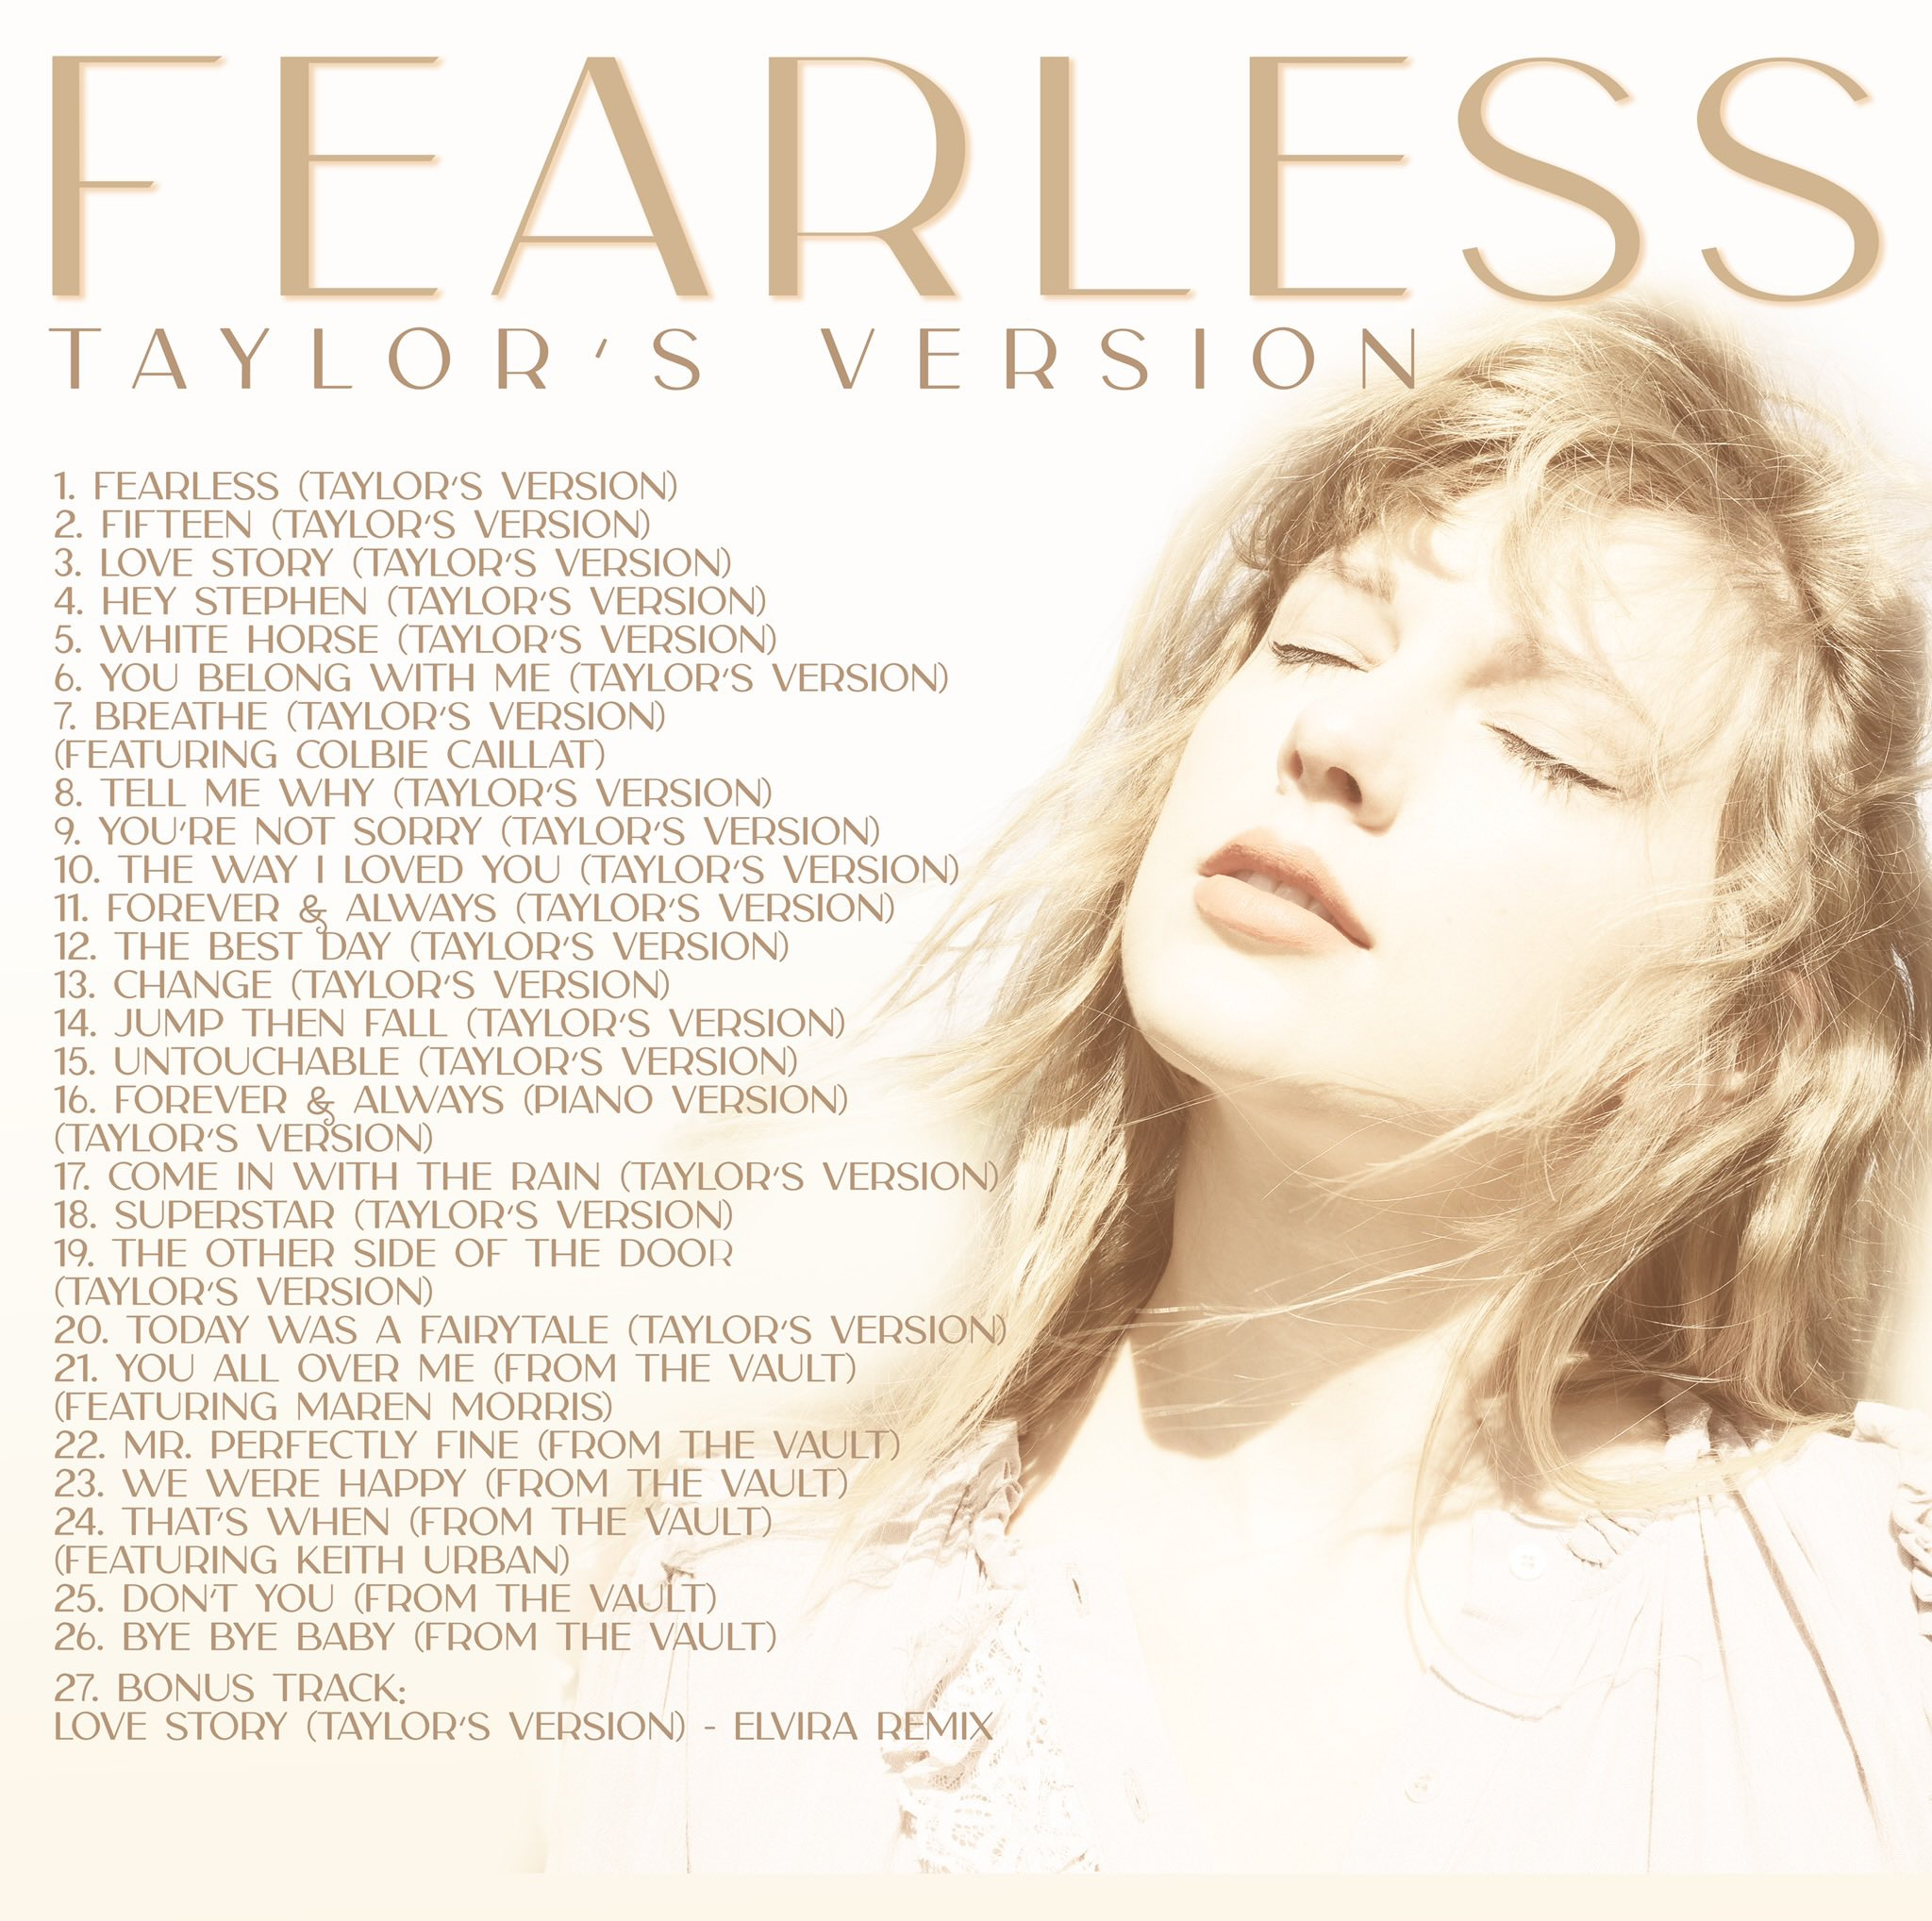 Taylor Swift – Fearless (Taylor's Version) Lyrics and Full Tracklist